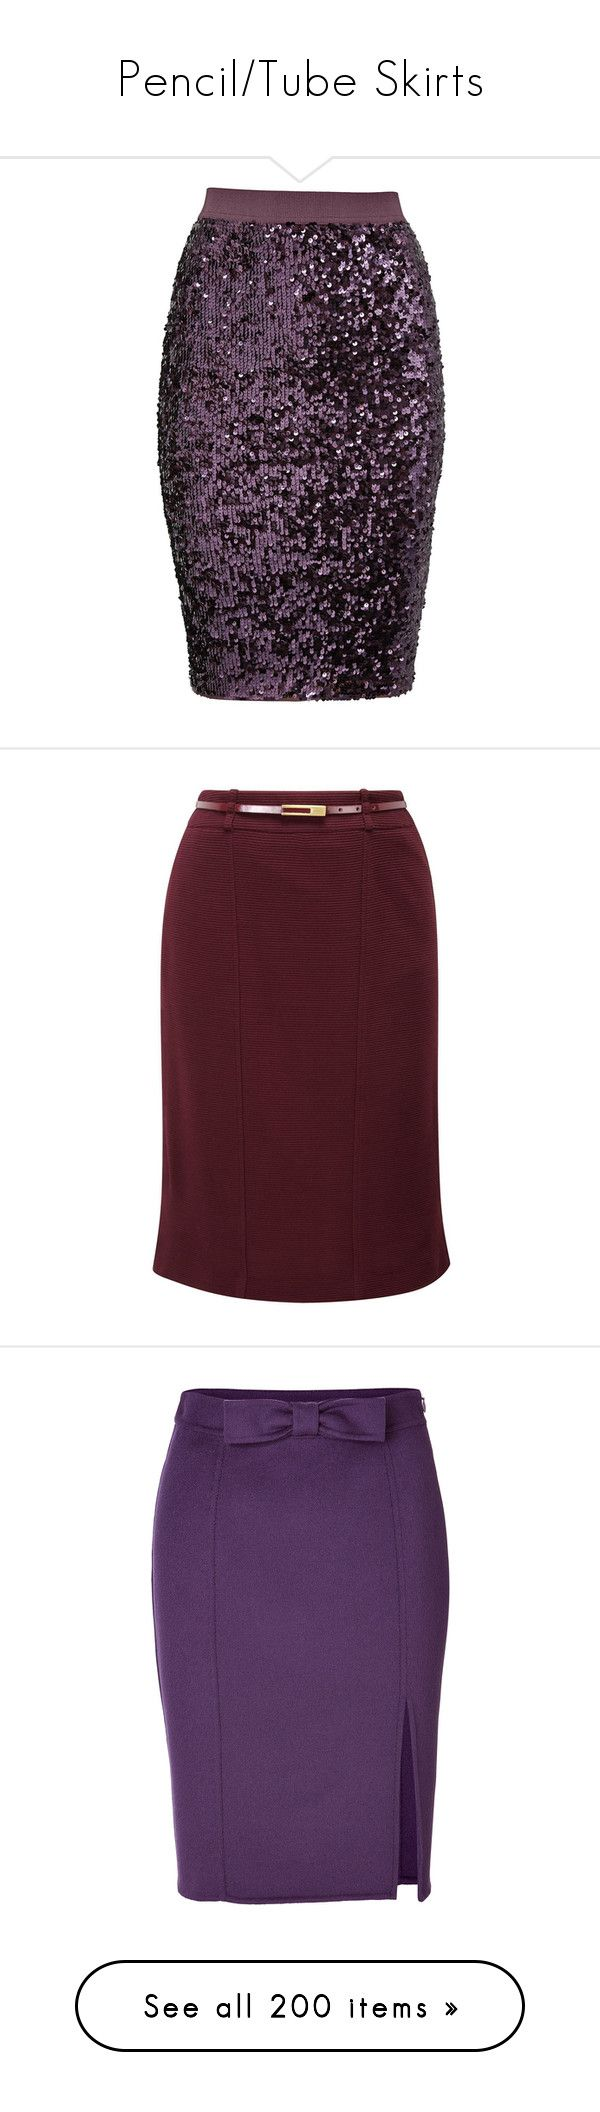 """""""Pencil/Tube Skirts"""" by pretty-fashion-designs ❤ liked on Polyvore featuring skirts, bottoms, saia, purple, pencil skirt, purple skirt, bodycon skirt, slimming skirts, body con pencil skirt and jupes"""